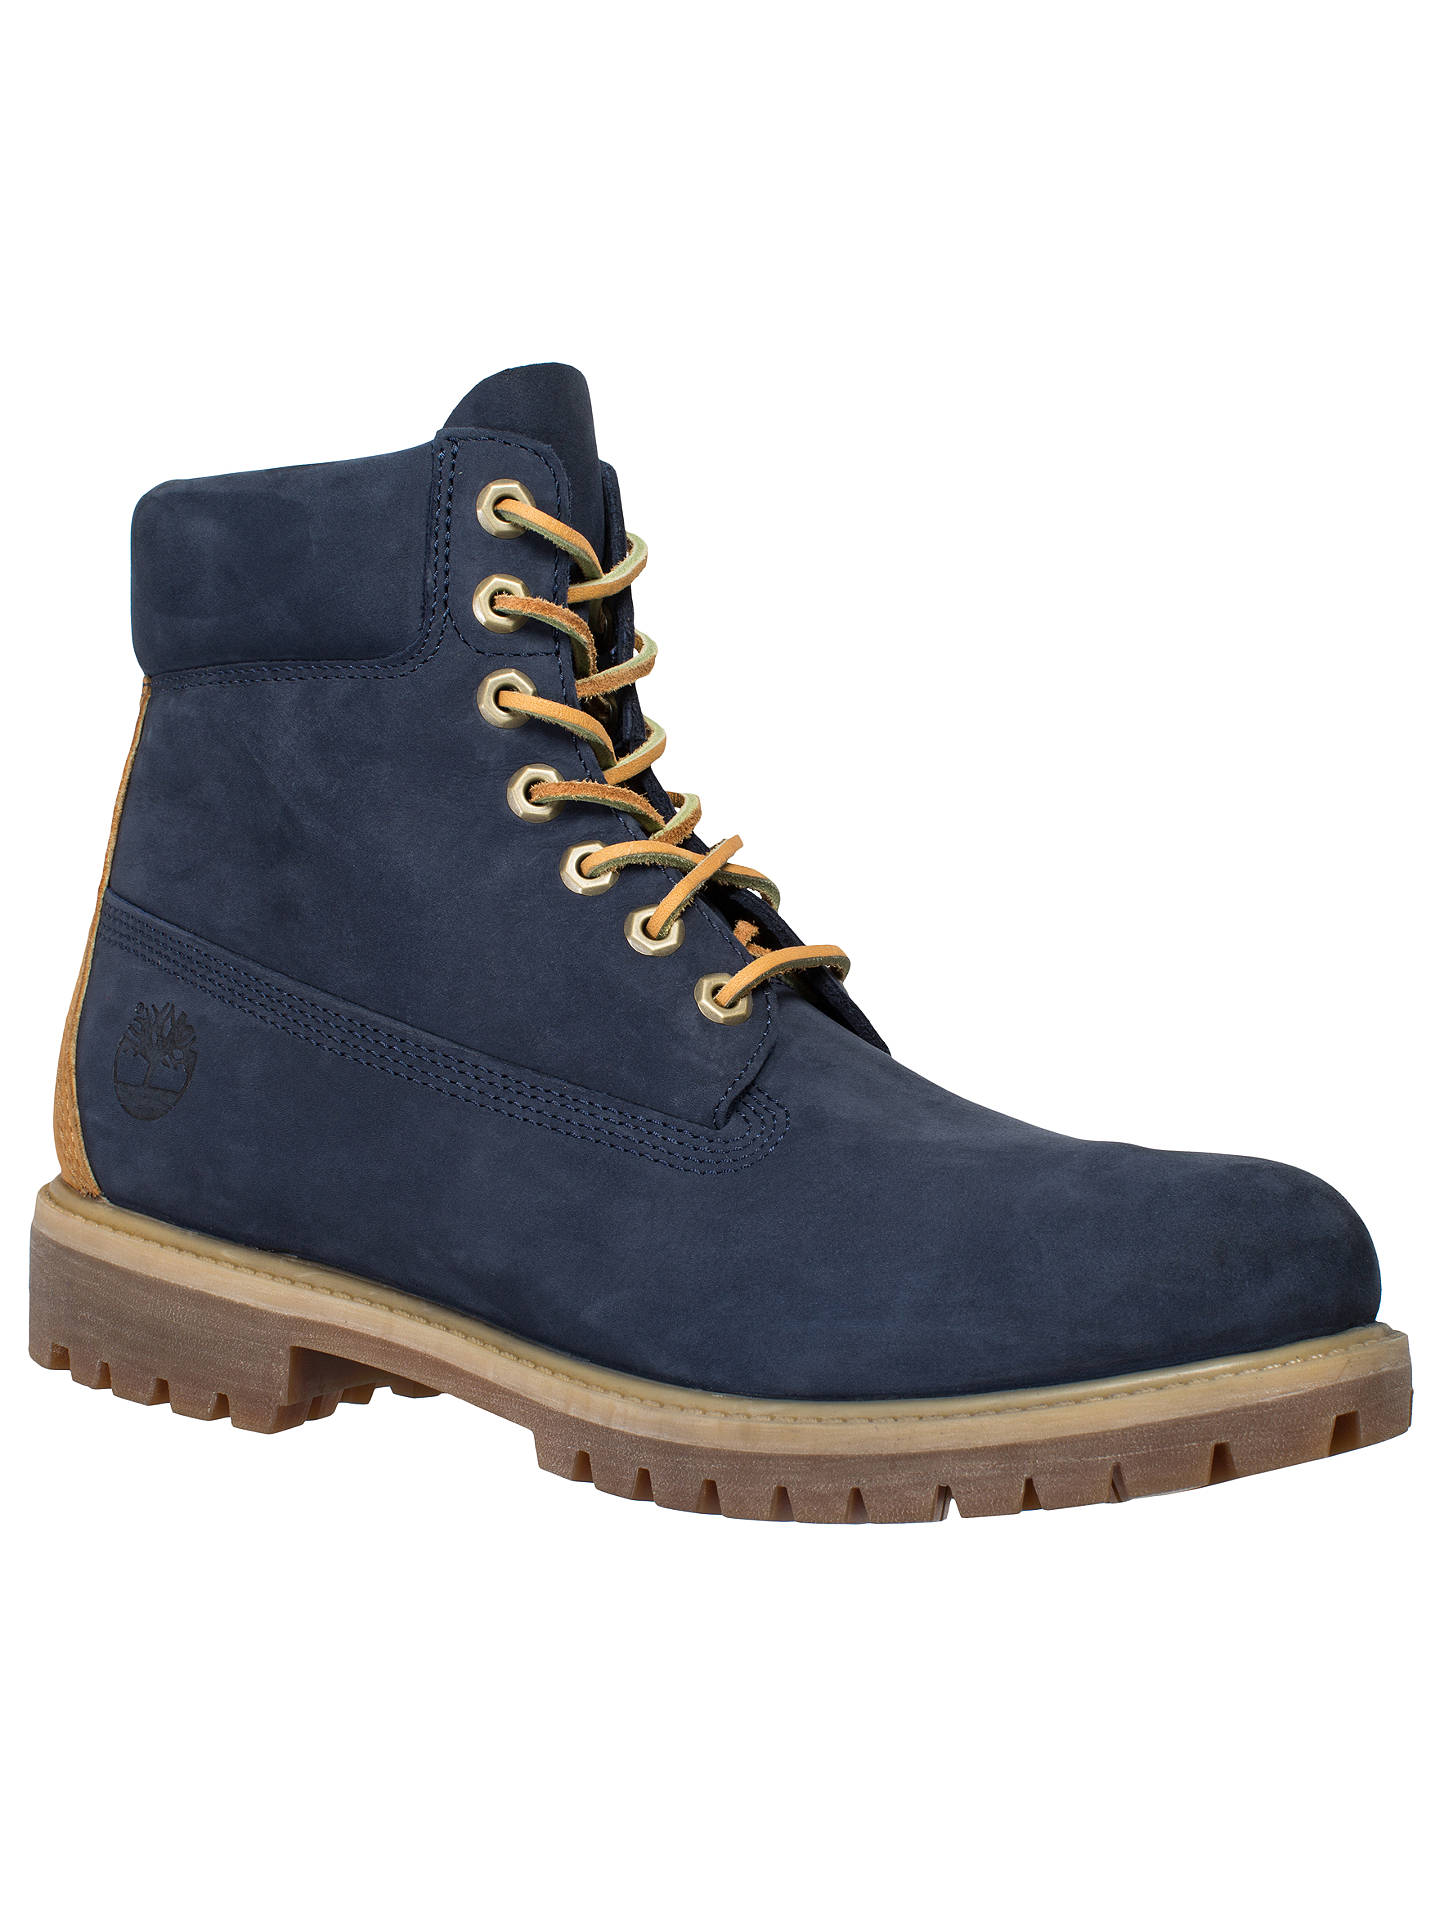 Timberland Classic 6 Inch Premium Boots at John Lewis & Partners